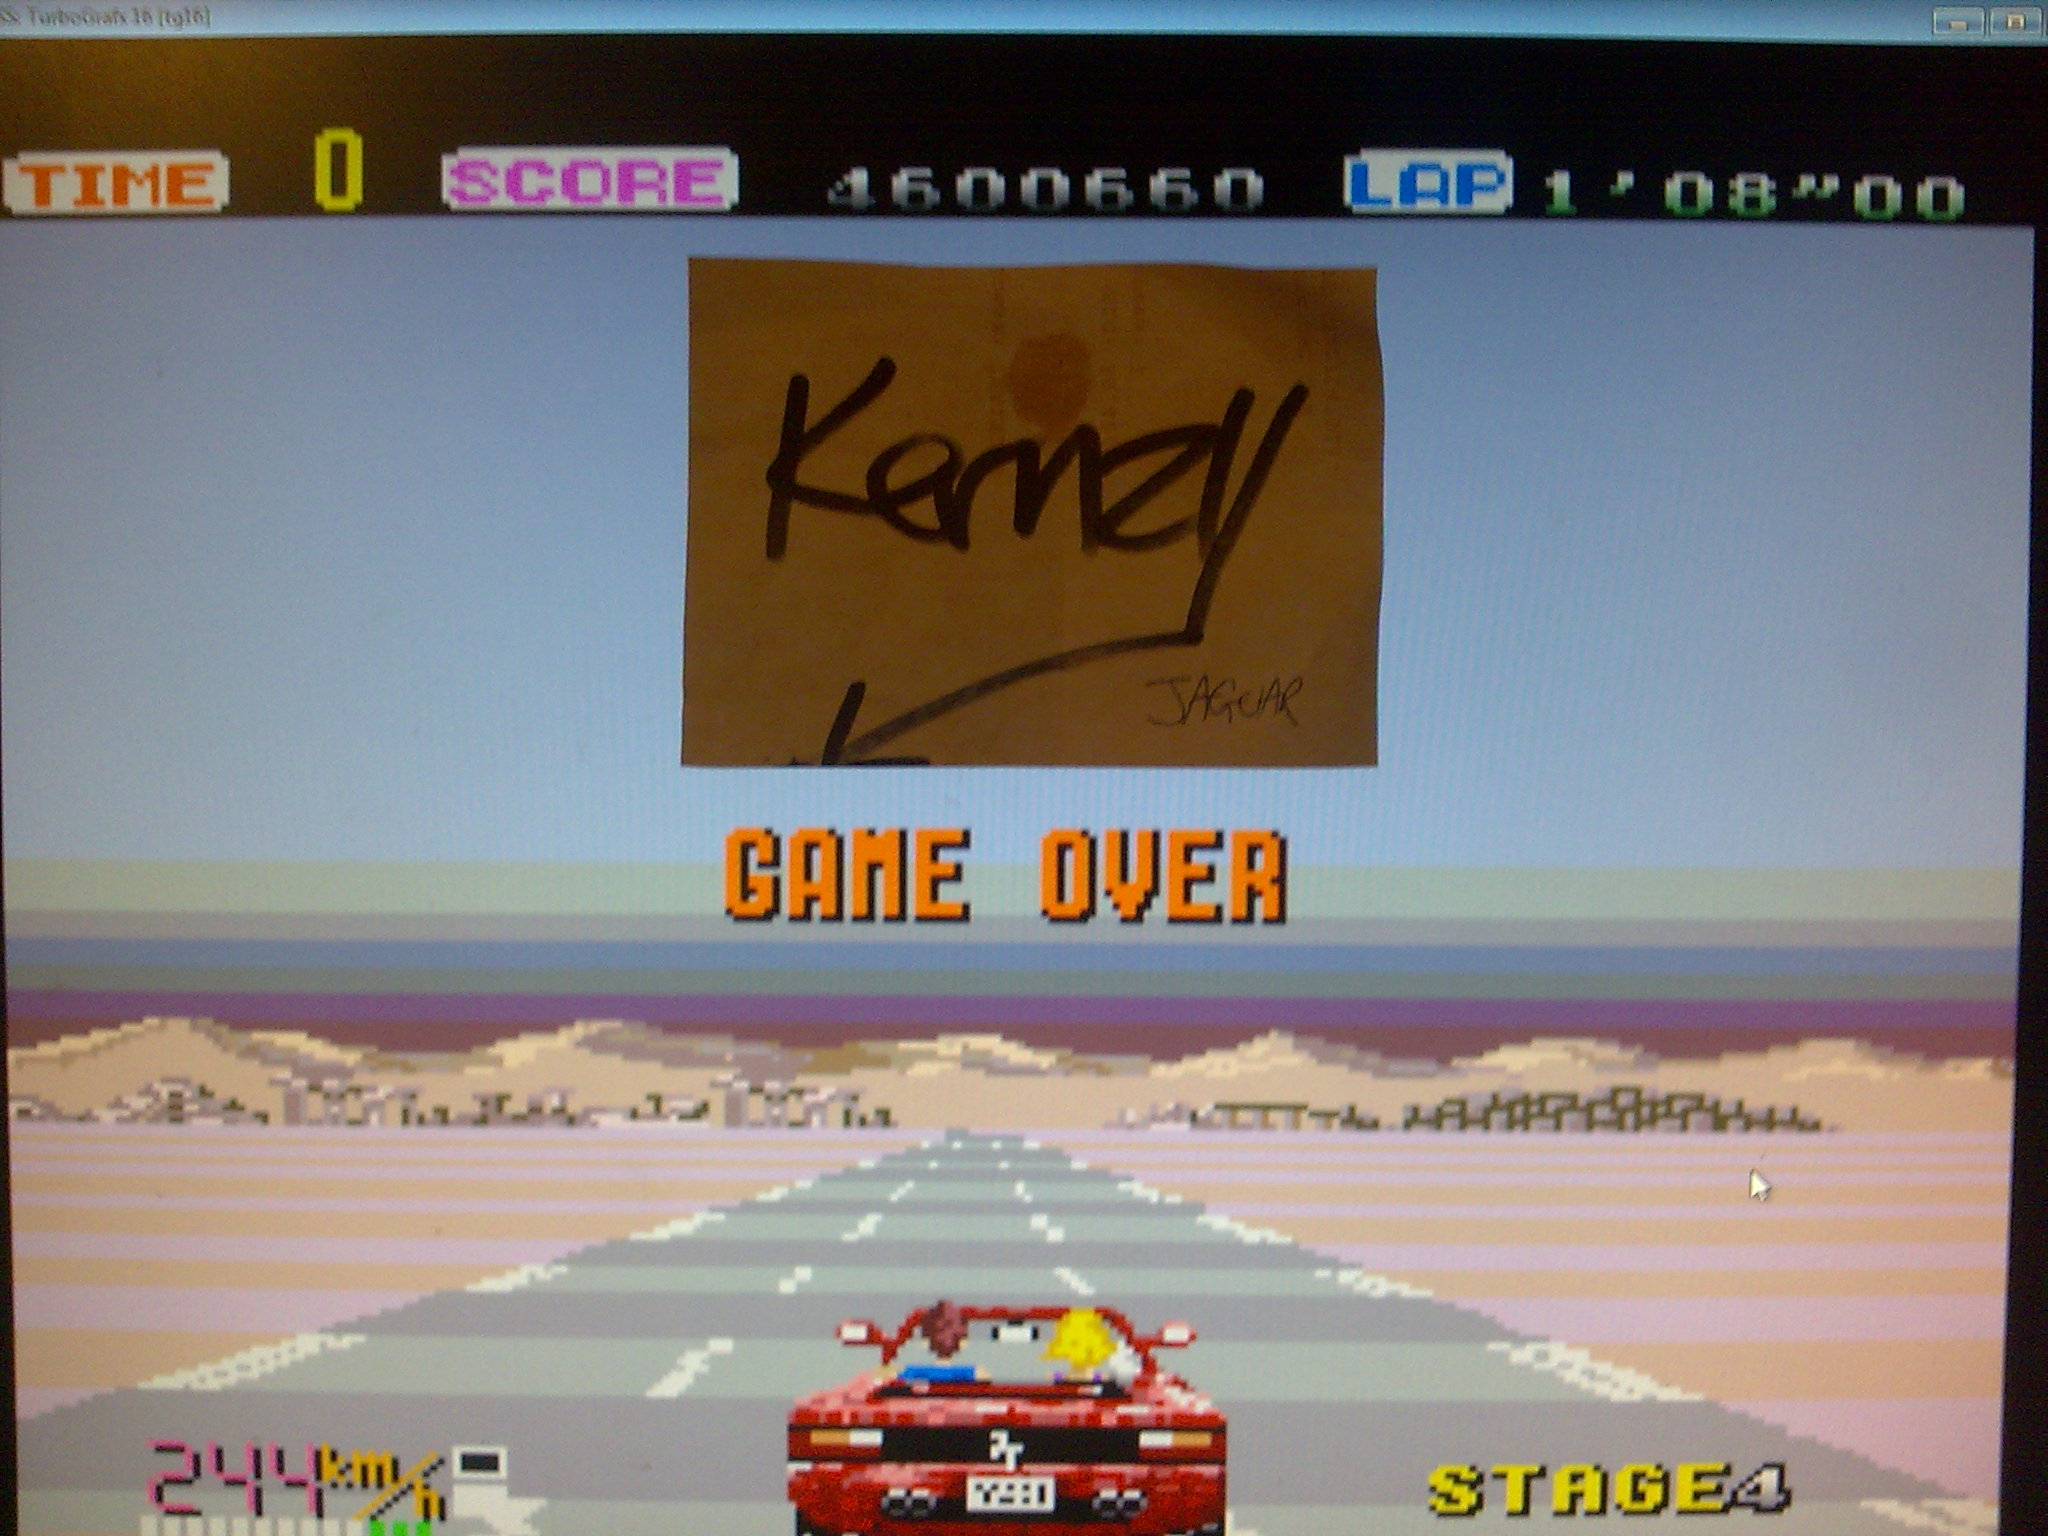 kernzy: Out Run: Easy (TurboGrafx-16/PC Engine Emulated) 4,600,660 points on 2014-10-11 10:53:24